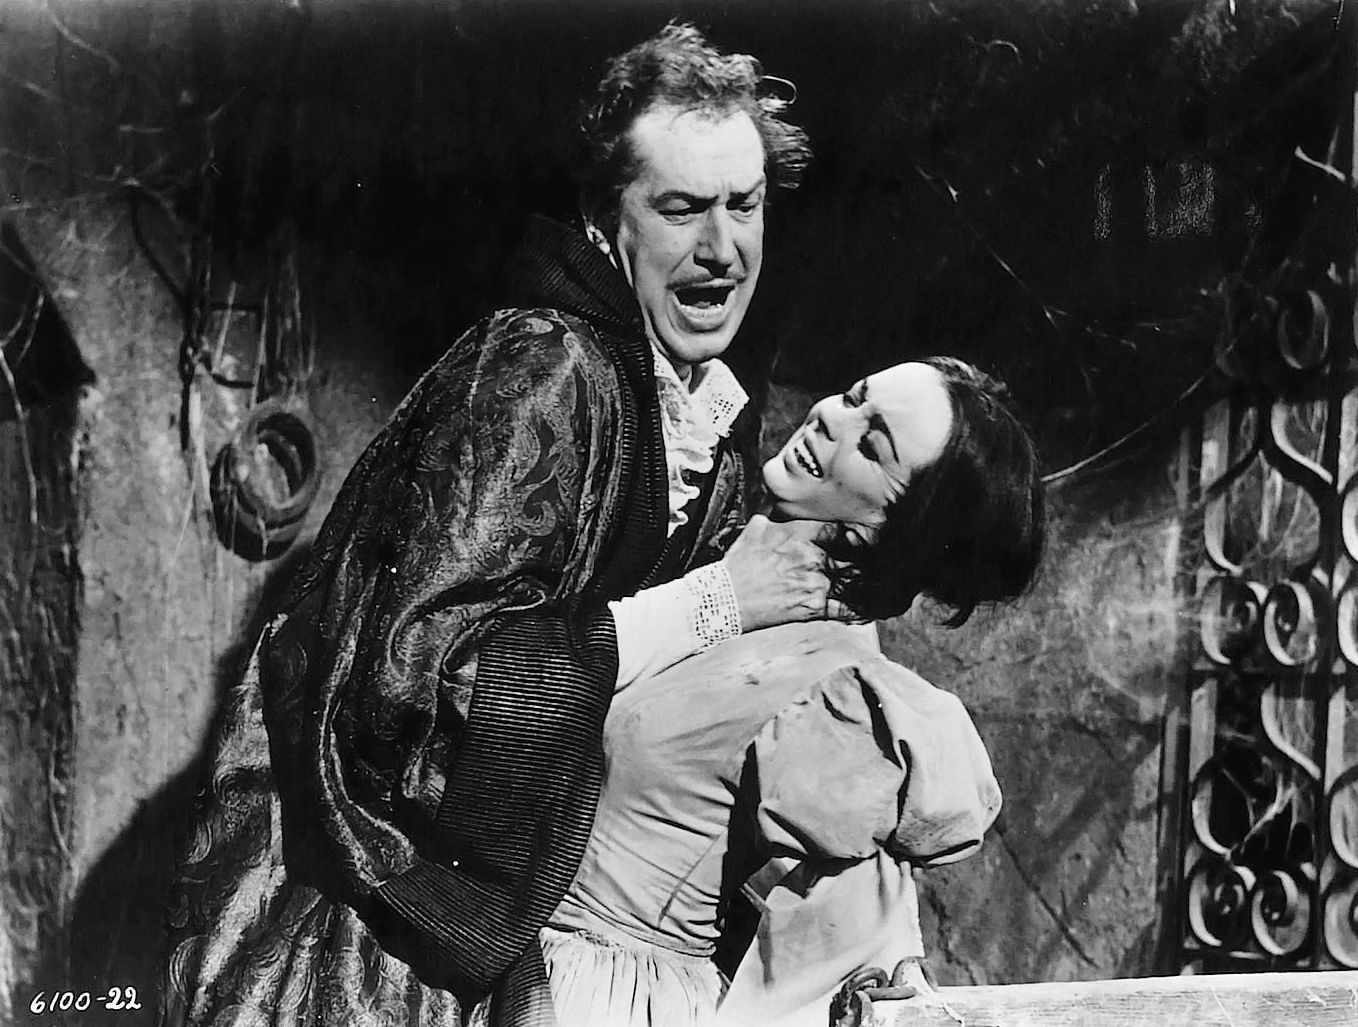 best images about vincent price gene tierney the pit and the pendulum edgar allan poe barbara steele and vincent price